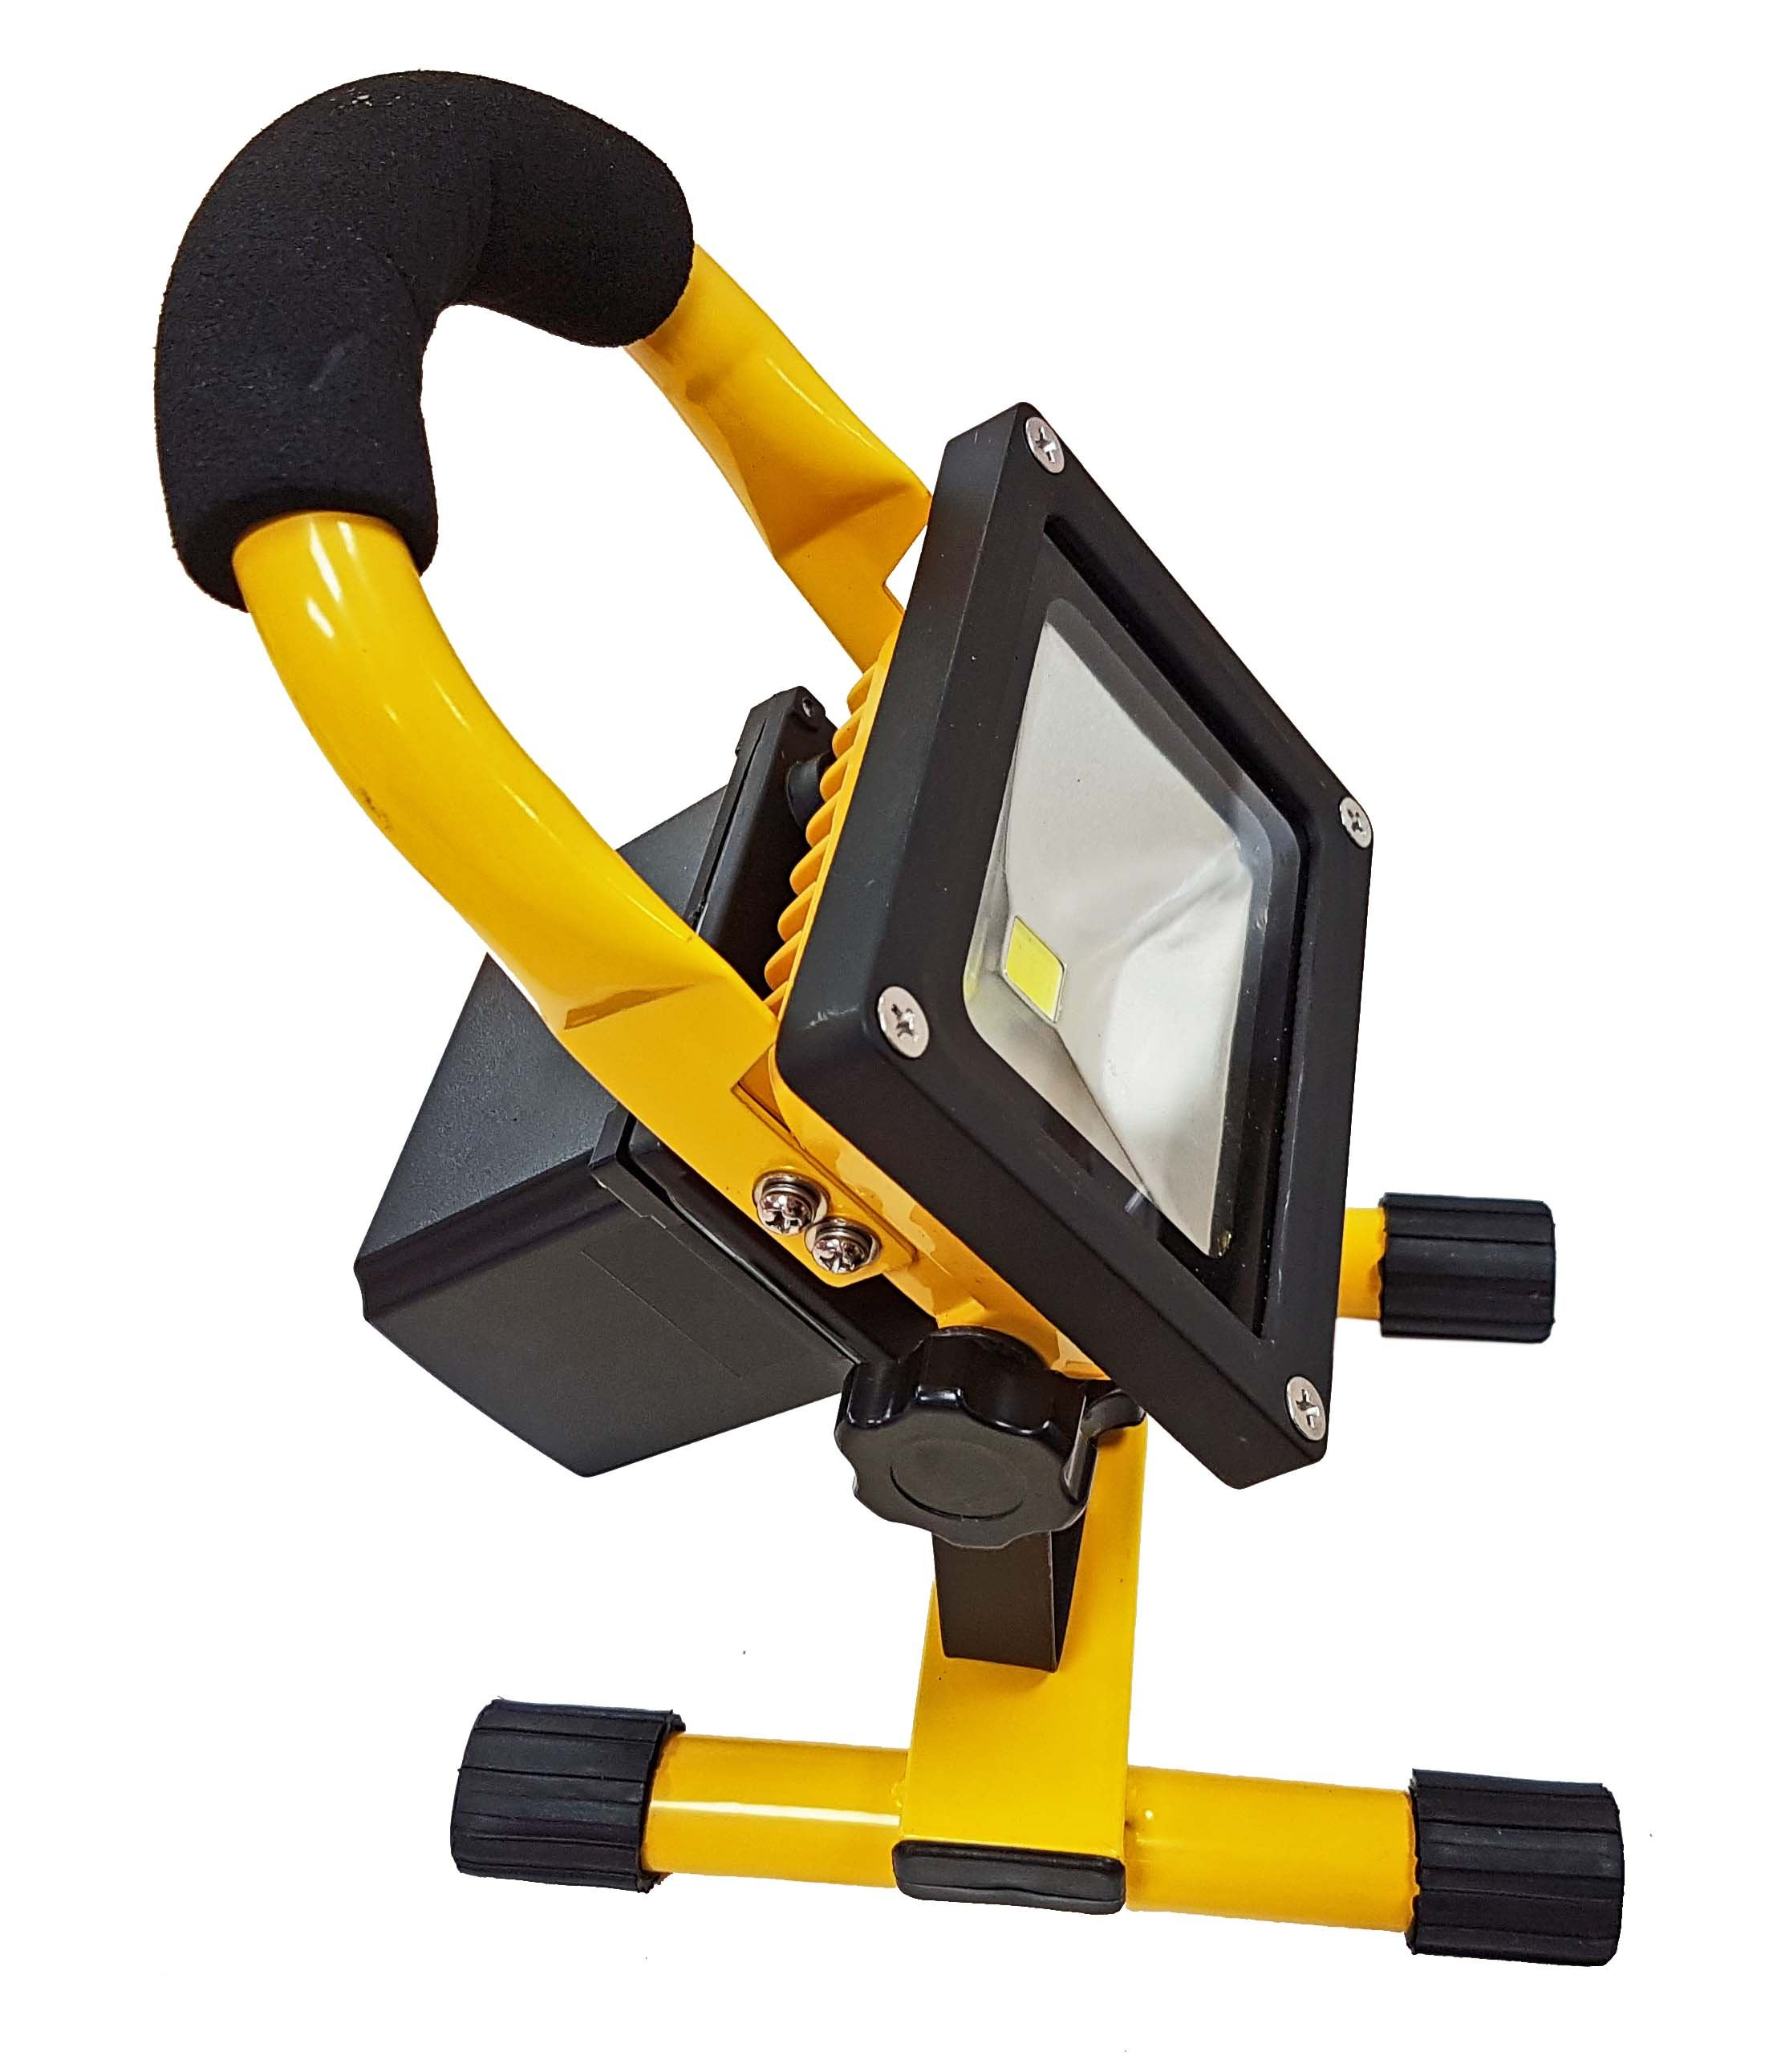 Toolzone 10W Cob Led Worklight Rechargeable